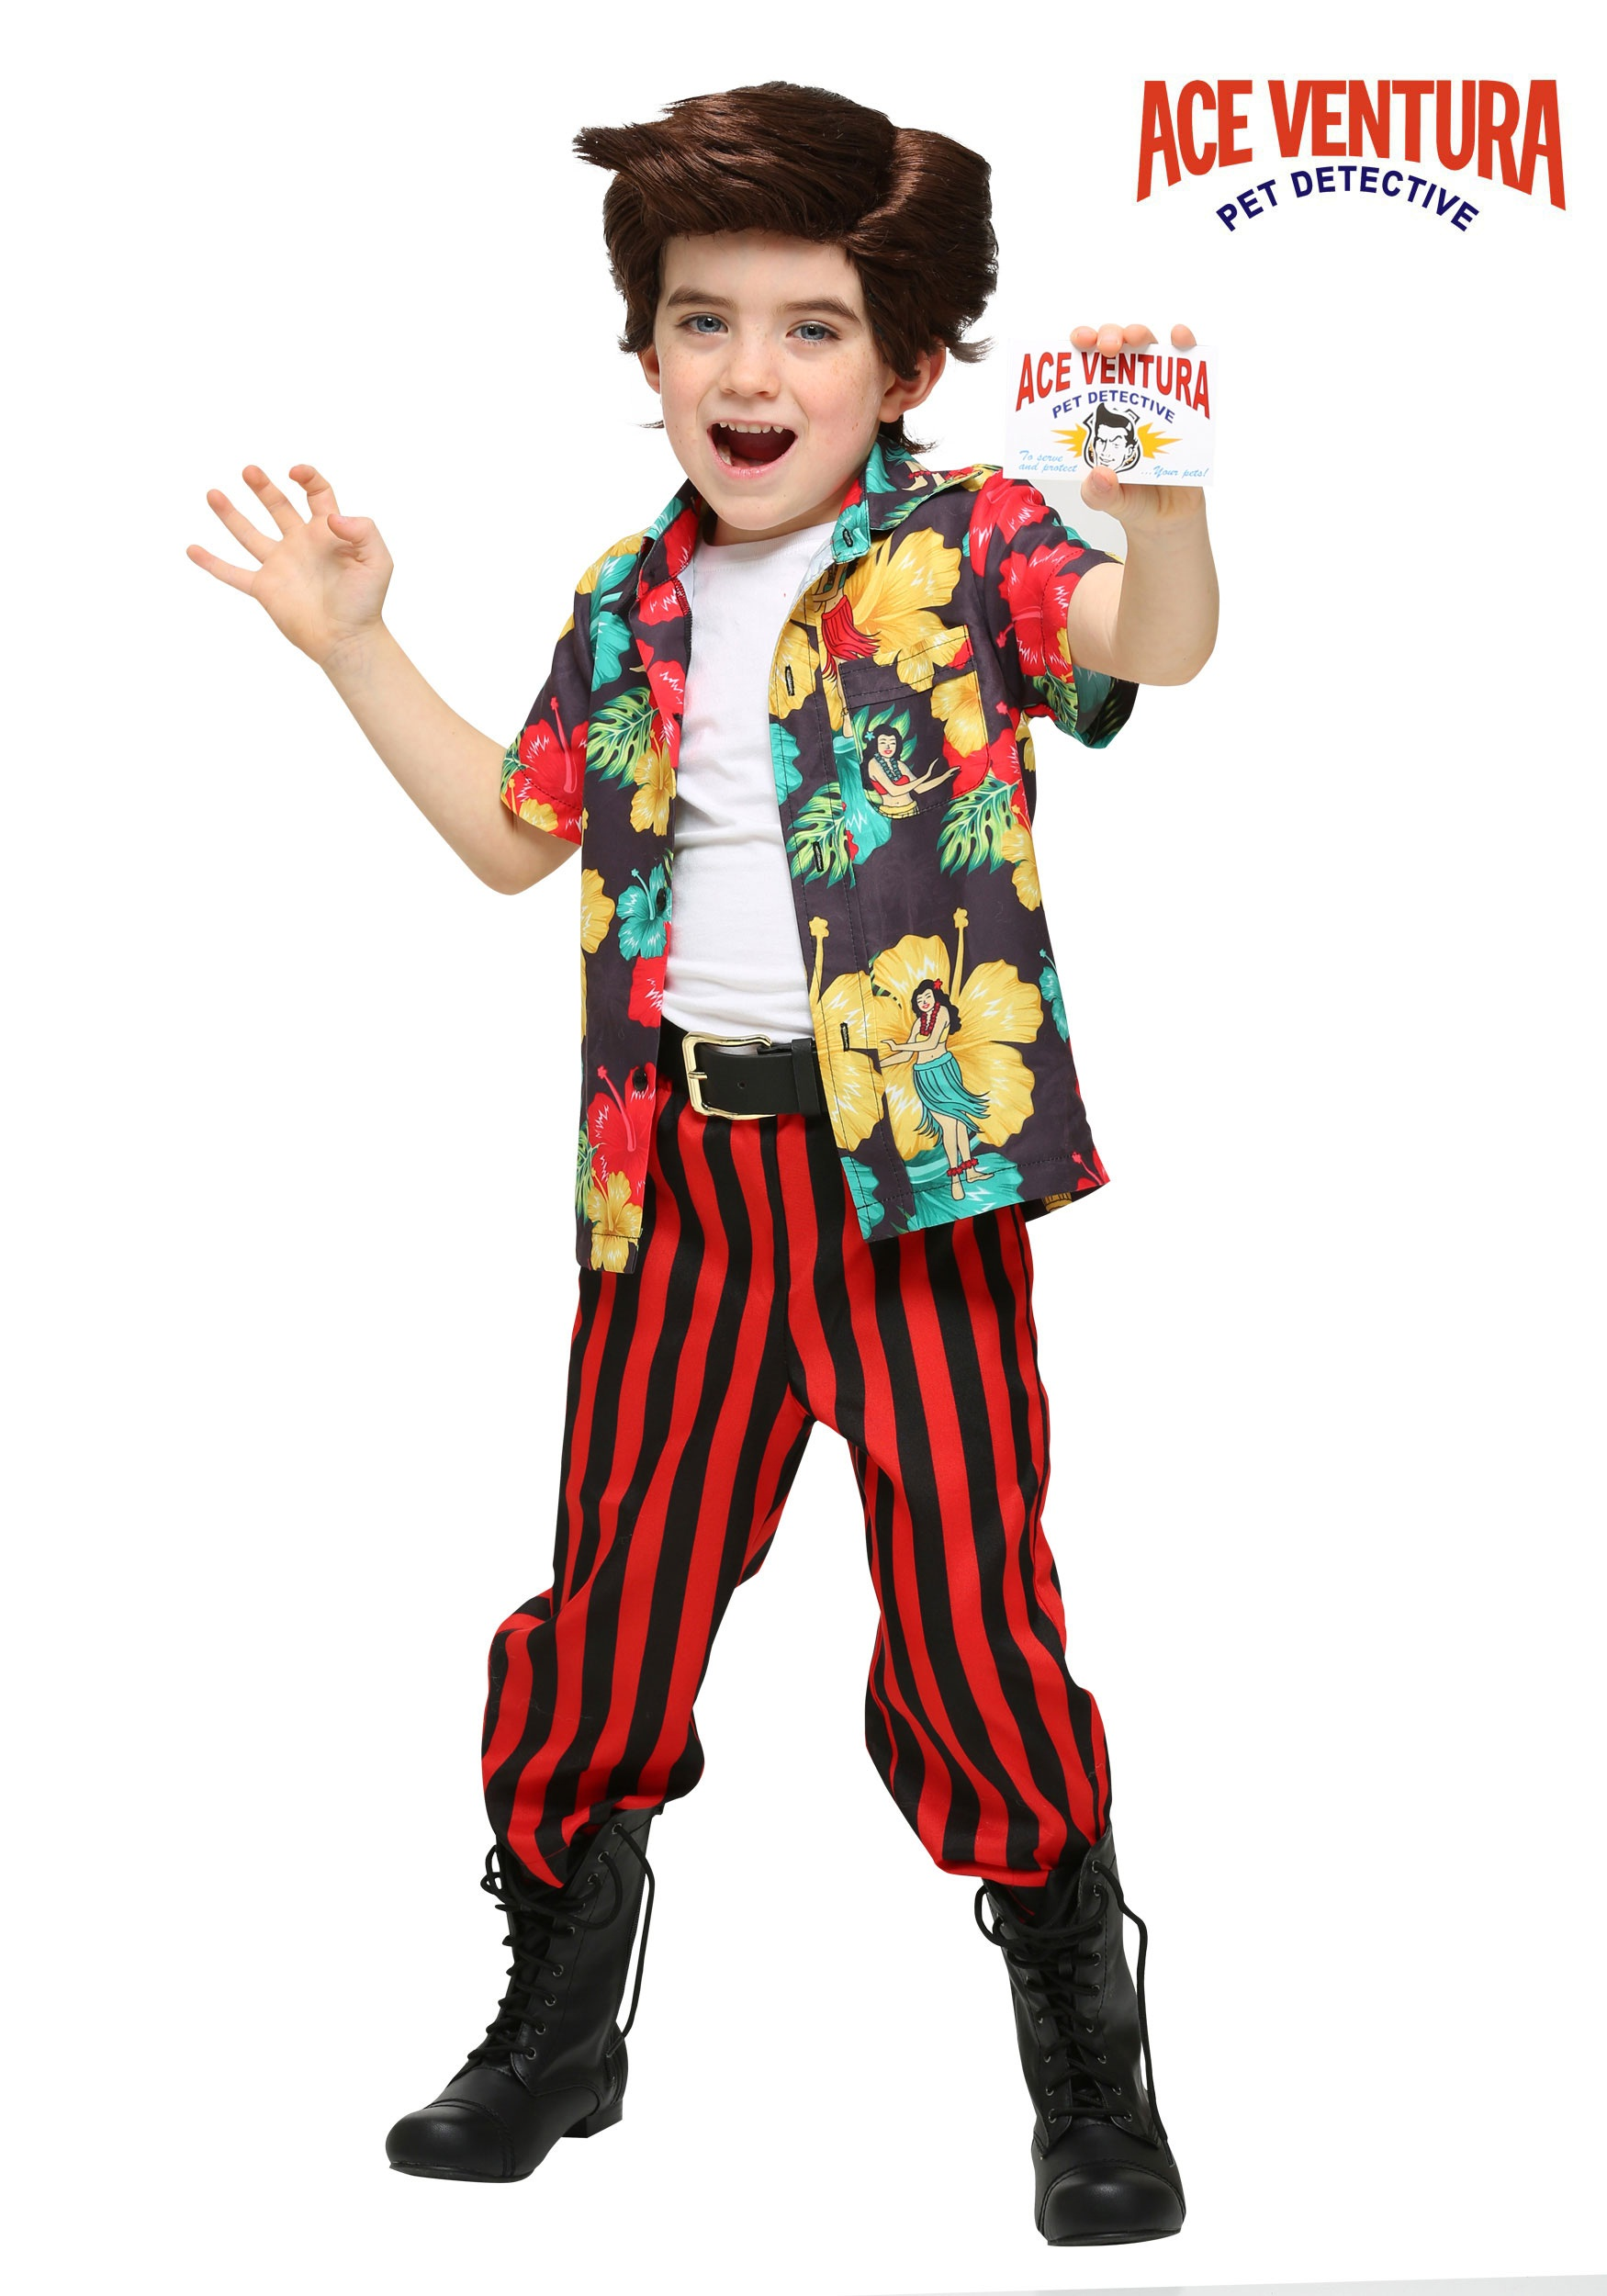 Beautiful Ace Ventura Costume #1: Ace-ventura-toddler-costume-with-wig.jpg